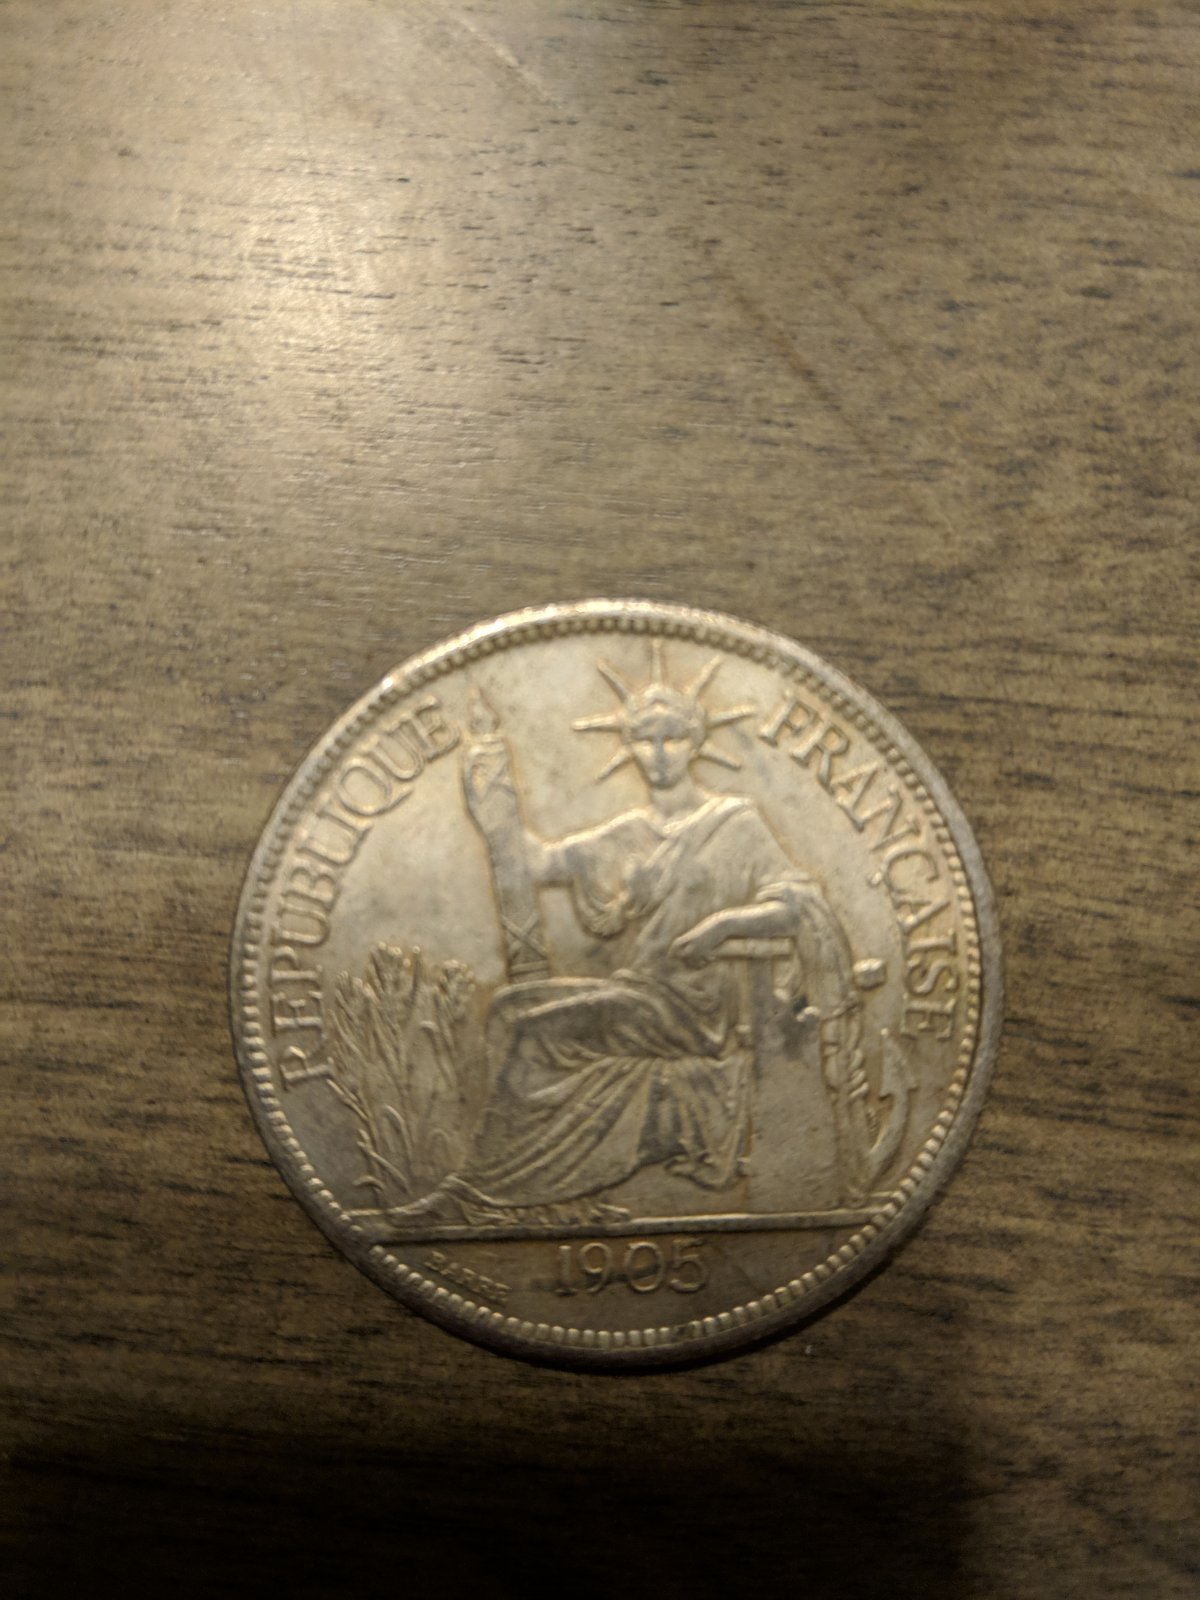 New member with some questions - French coin from 1905 and